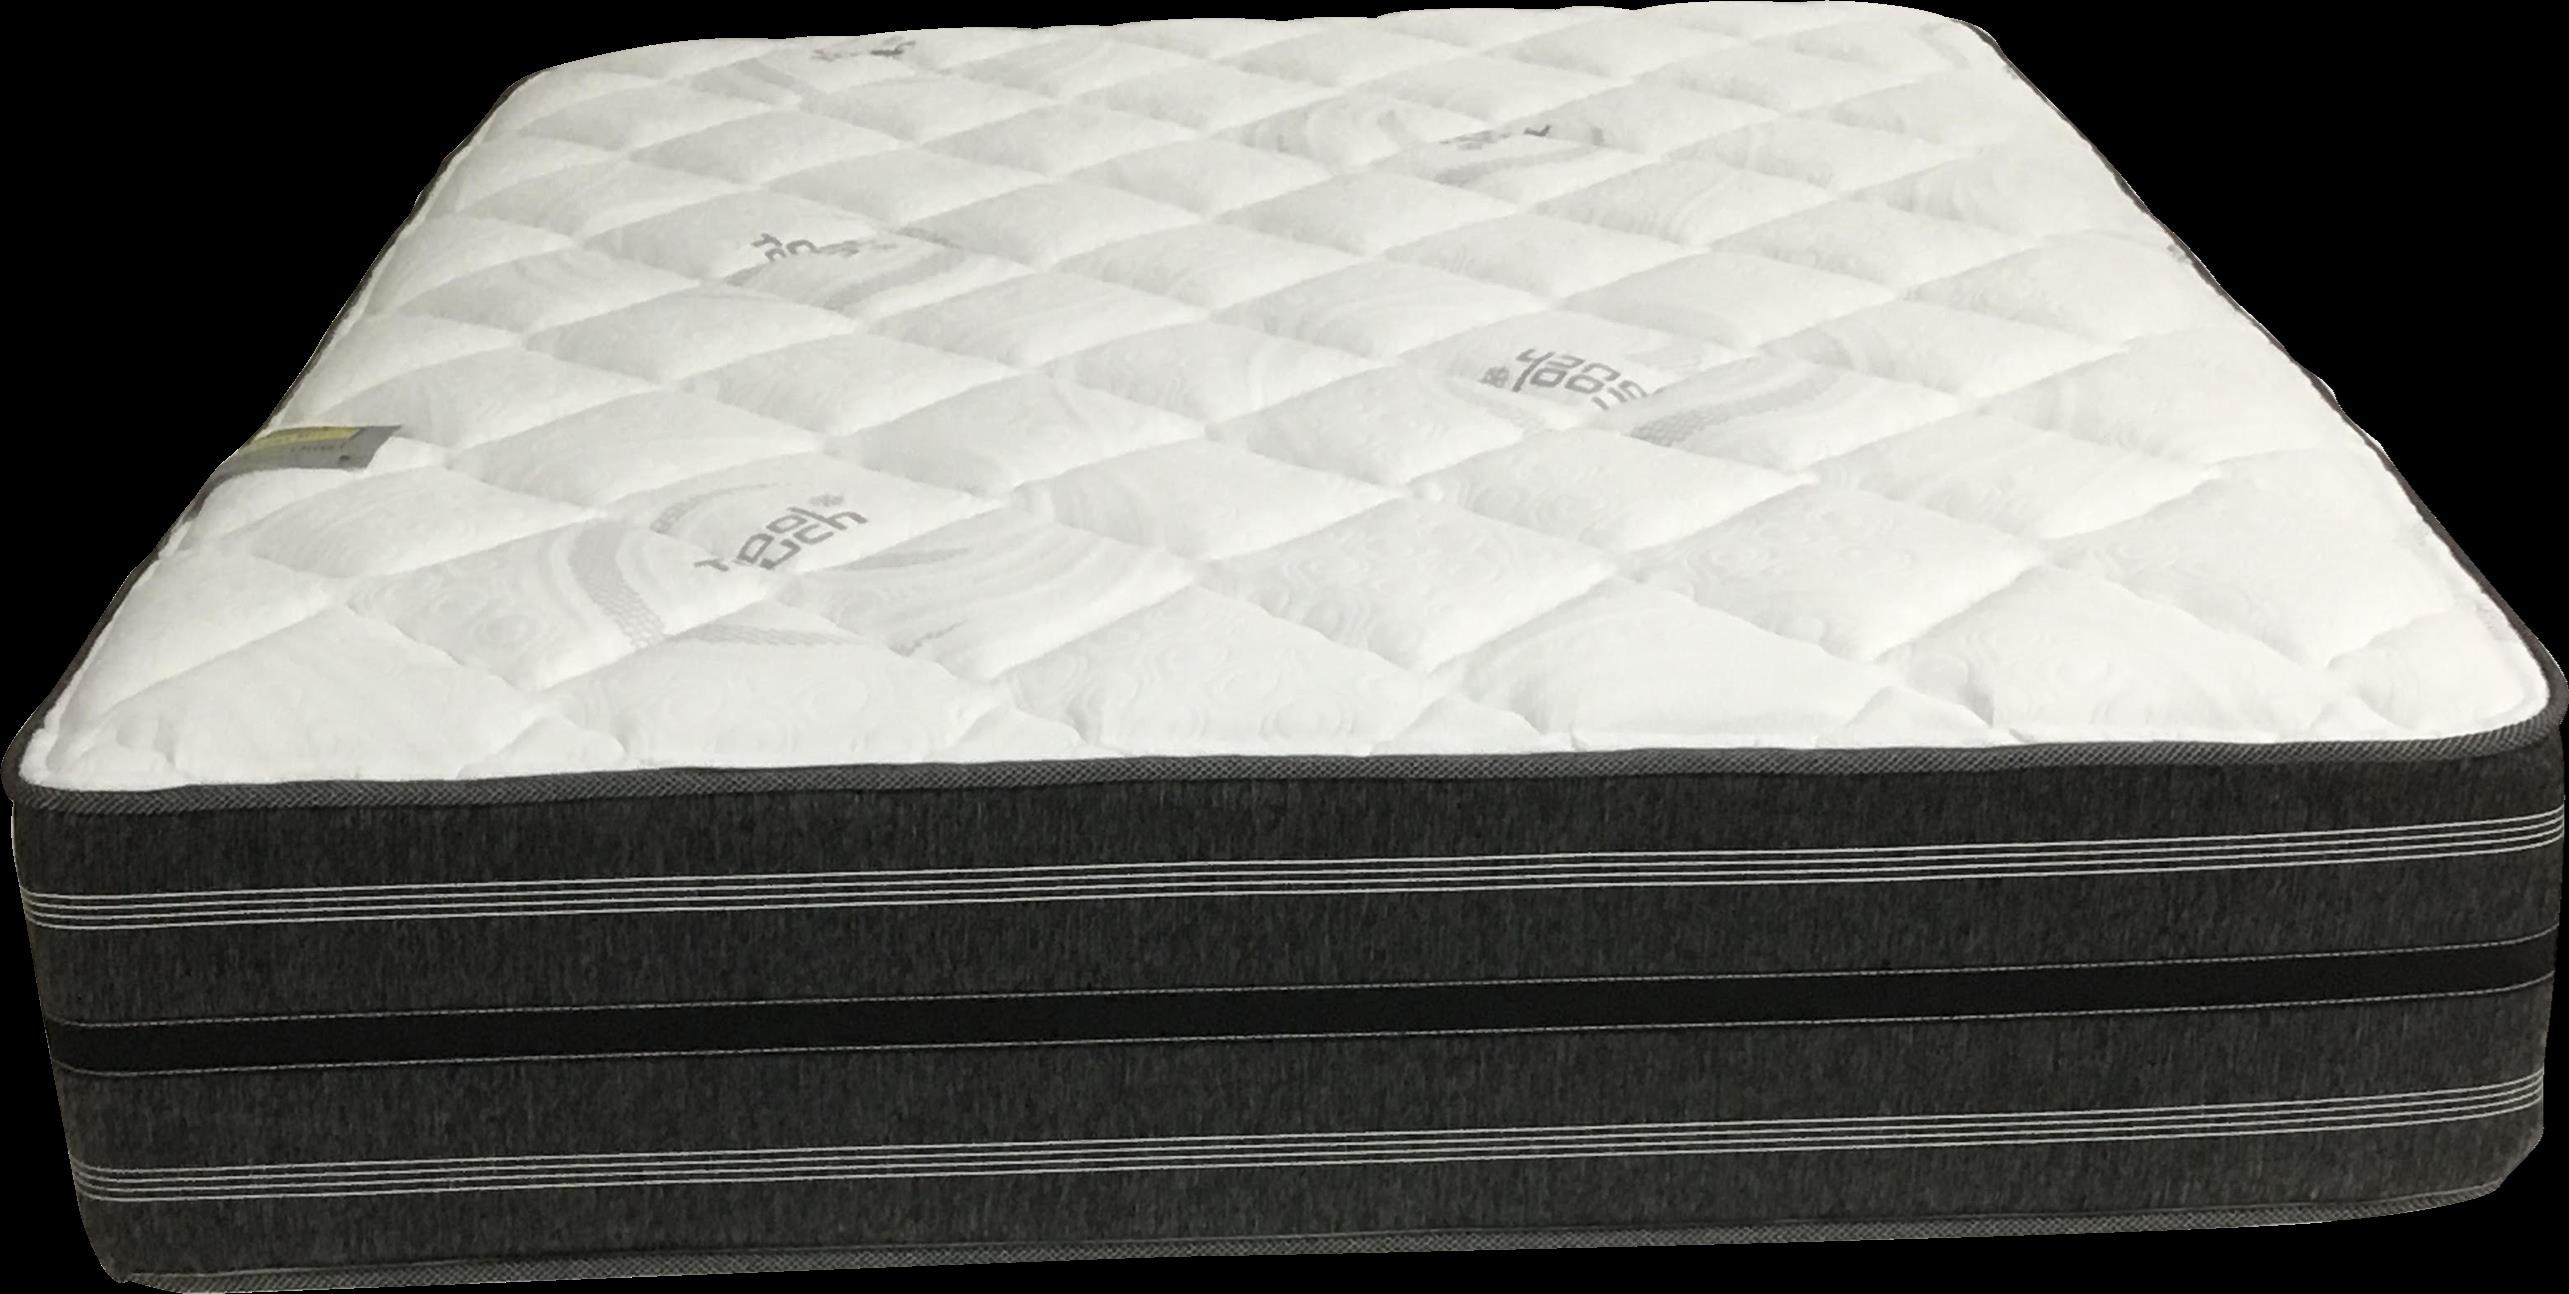 Greenland Cool Touch Cover Firm Queen Cool Touch Firm Mattress by Northeast Factory Direct at Northeast Factory Direct